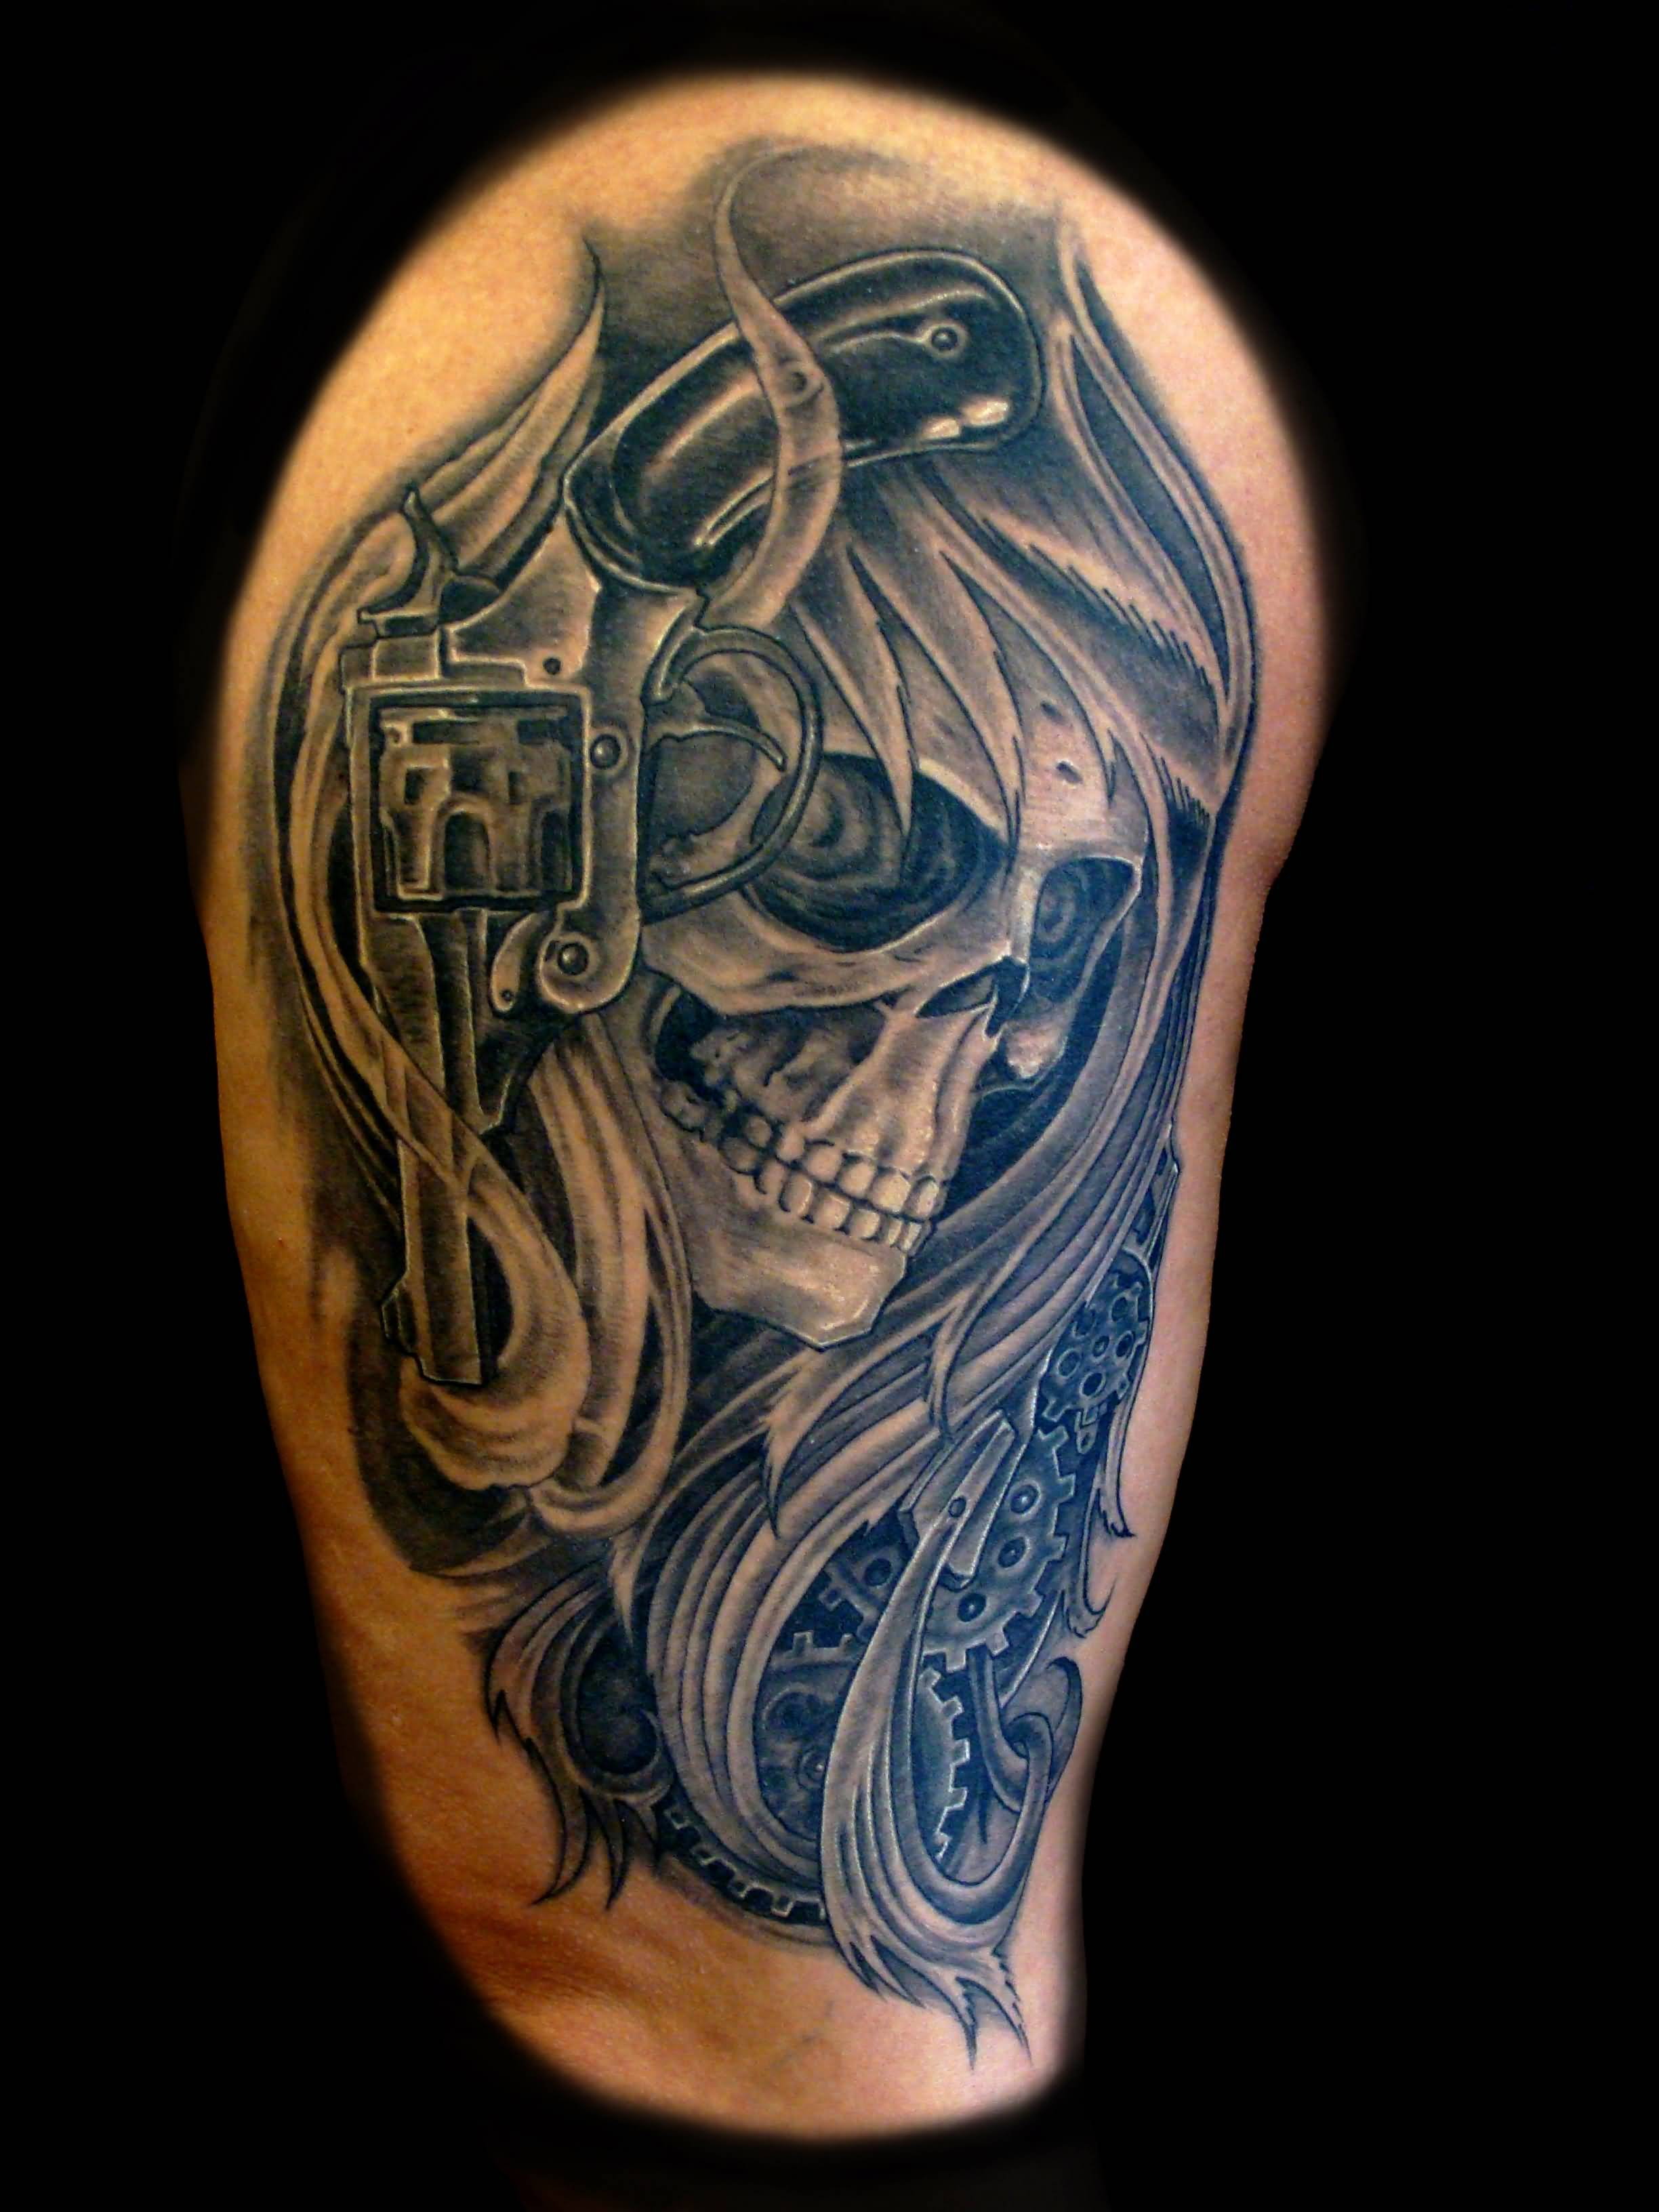 Awesome Mask Tattoo Of Skull